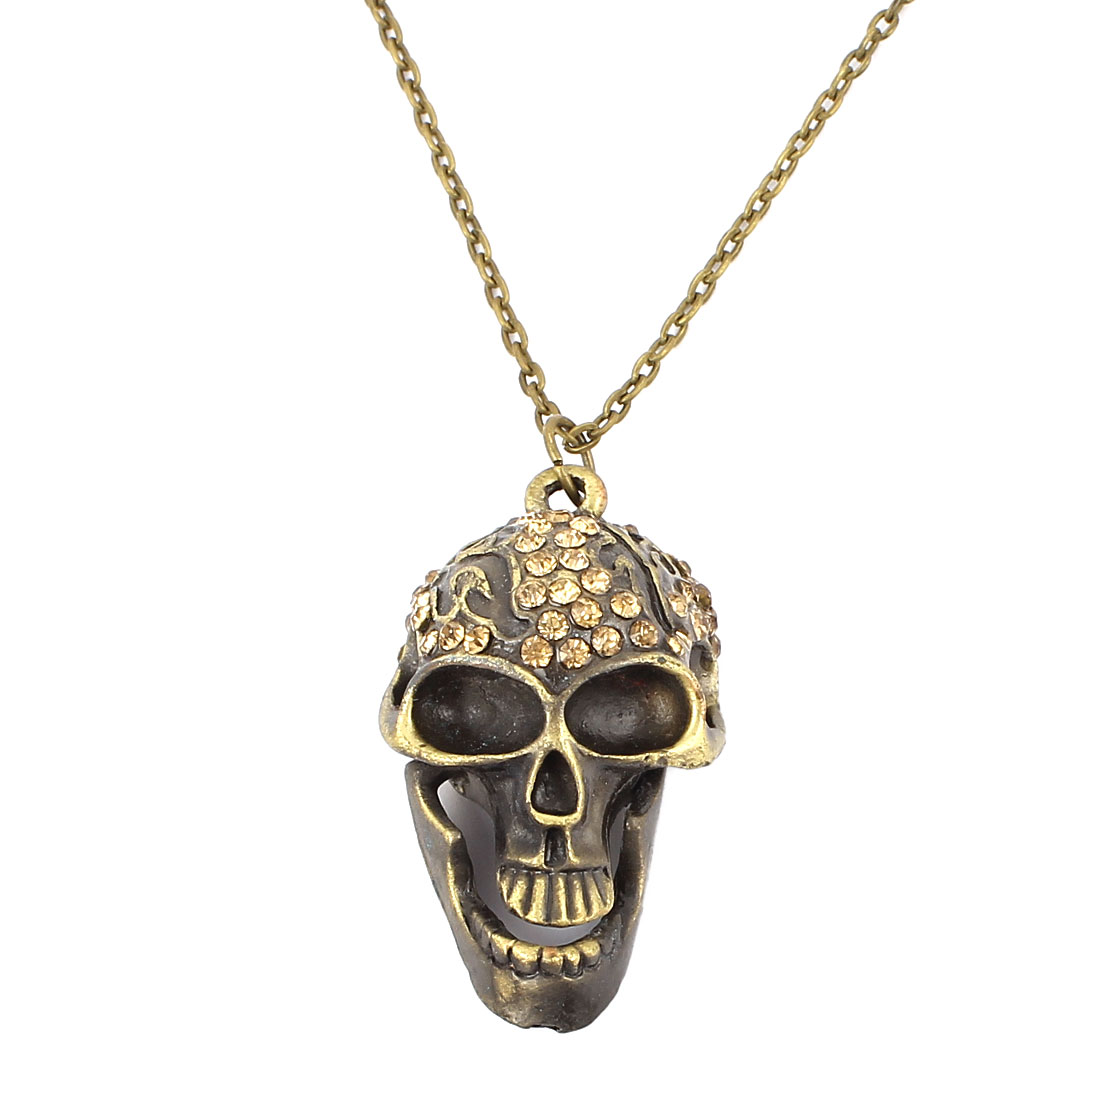 Women Fashion Jewelry Vintage Style Rhinestone Skull Pendant Necklace Bronze Tone